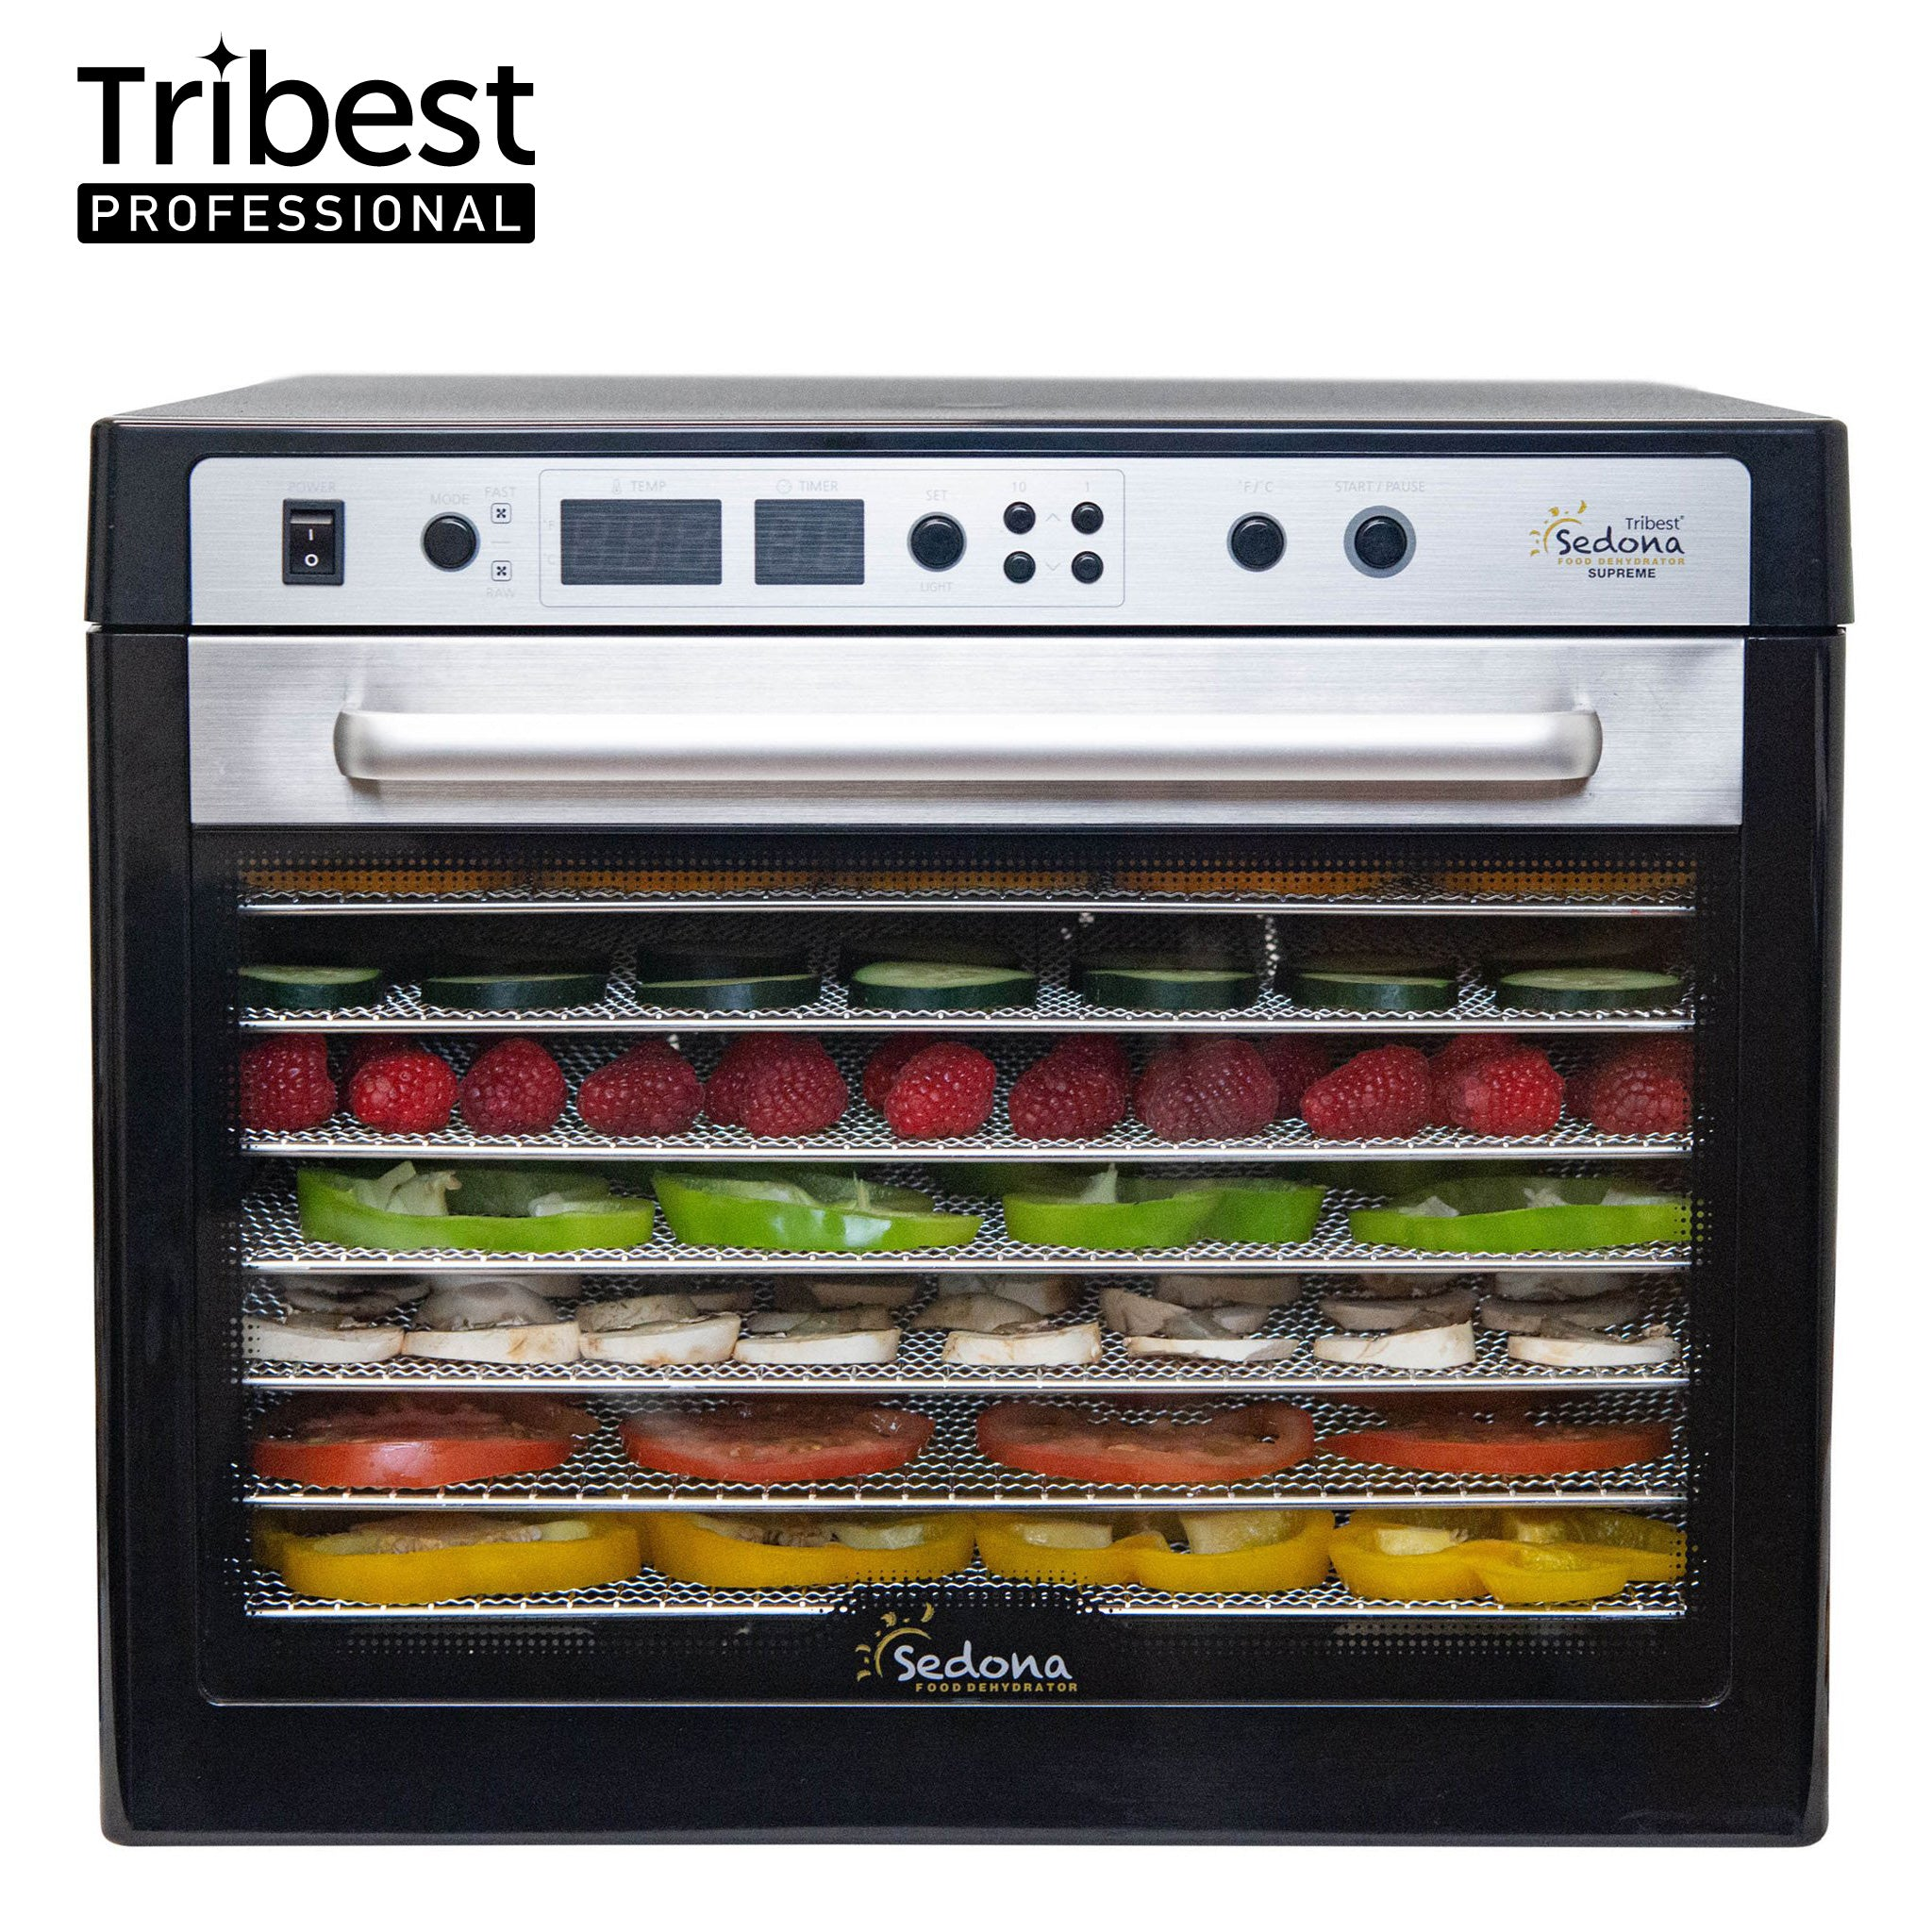 Sedona Supreme Commercial Food Dehydrator with Stainless Steel Trays SDC-S101 - Tribest